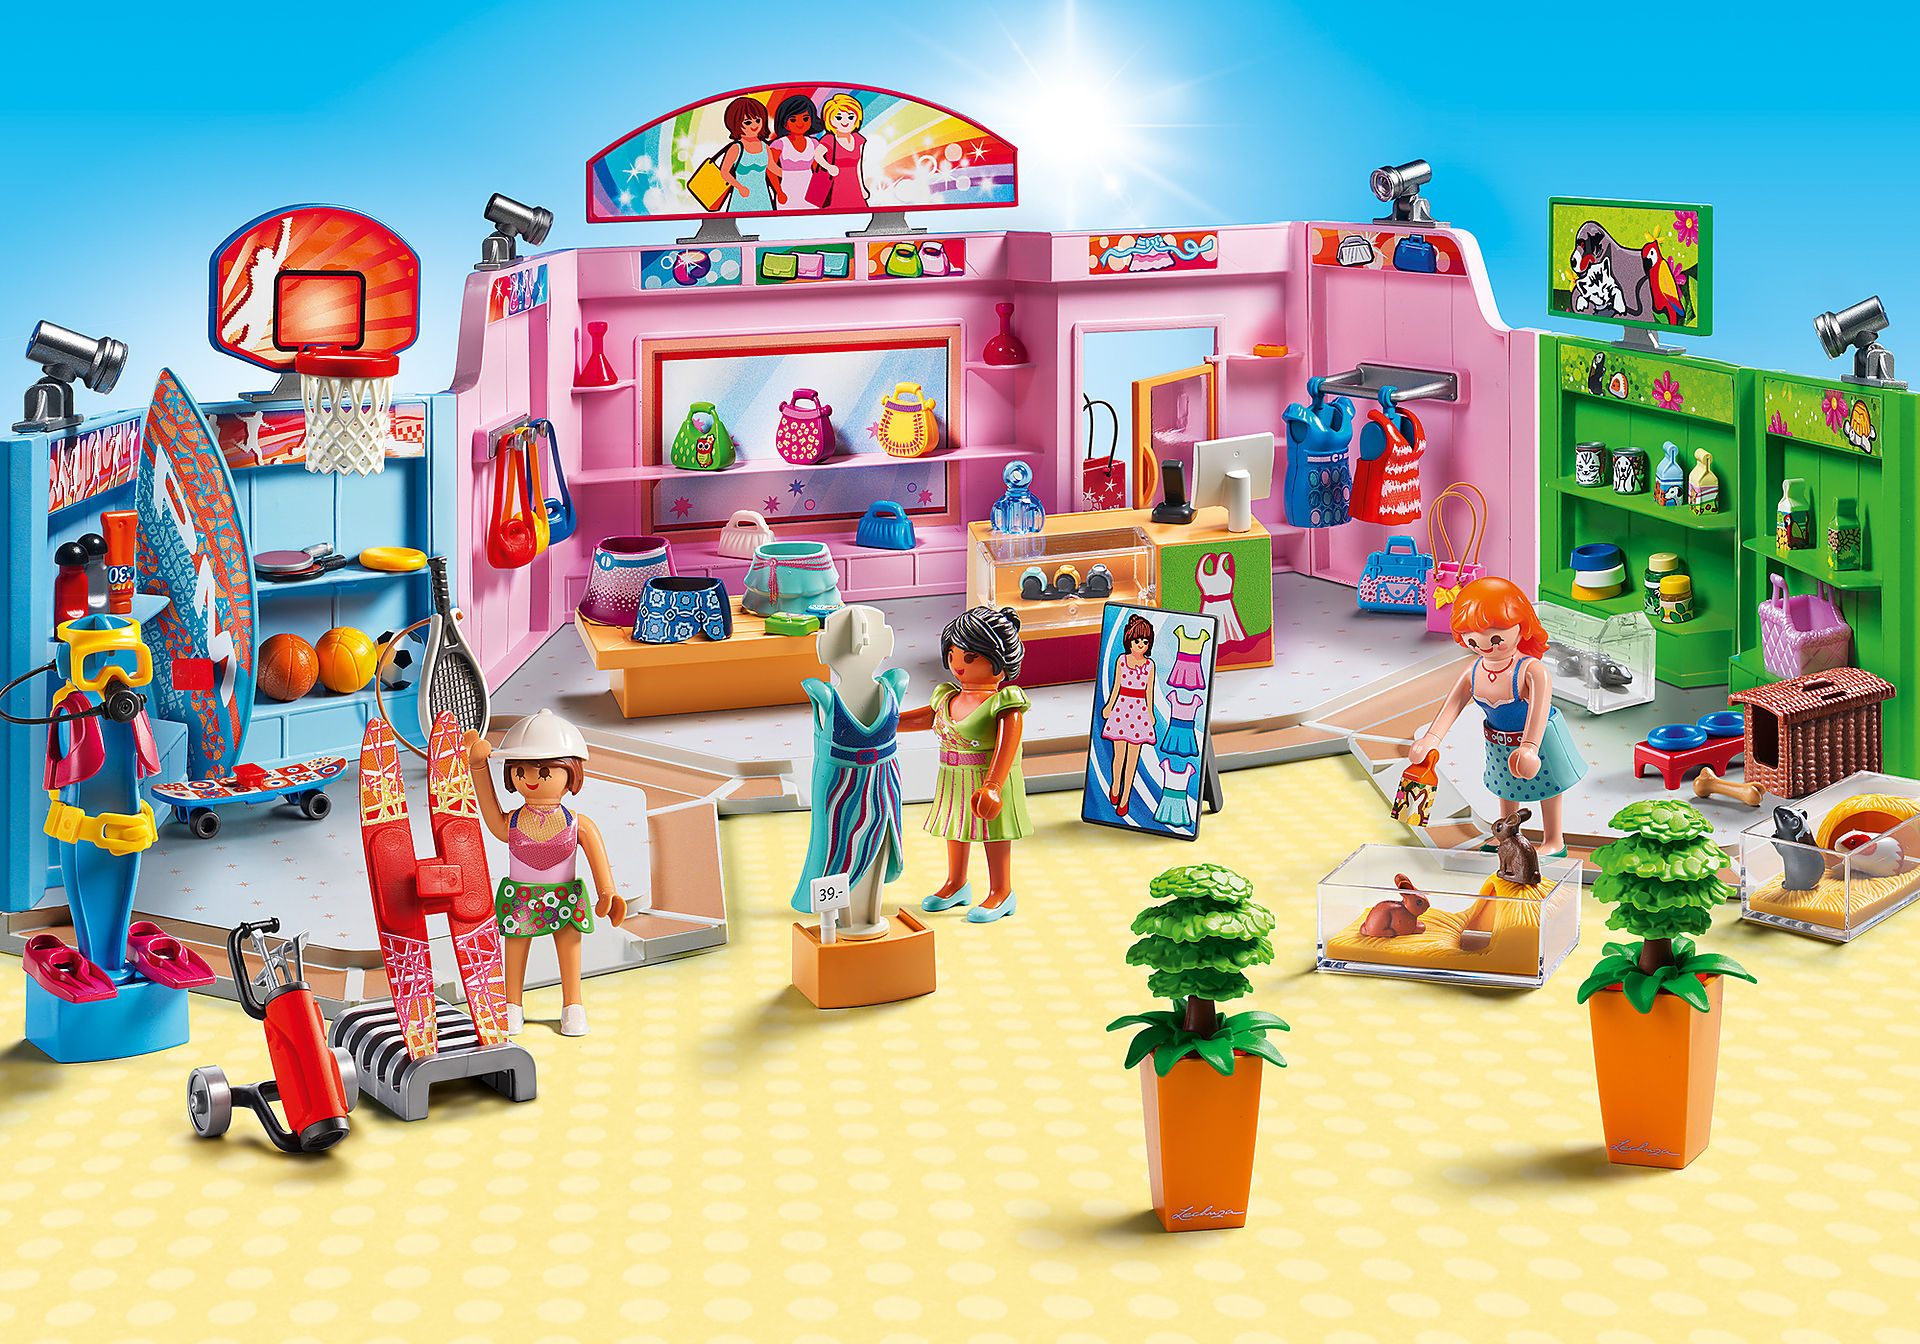 http://media.playmobil.com/i/playmobil/9078_product_detail/Paseo Comercial con 3 tiendas